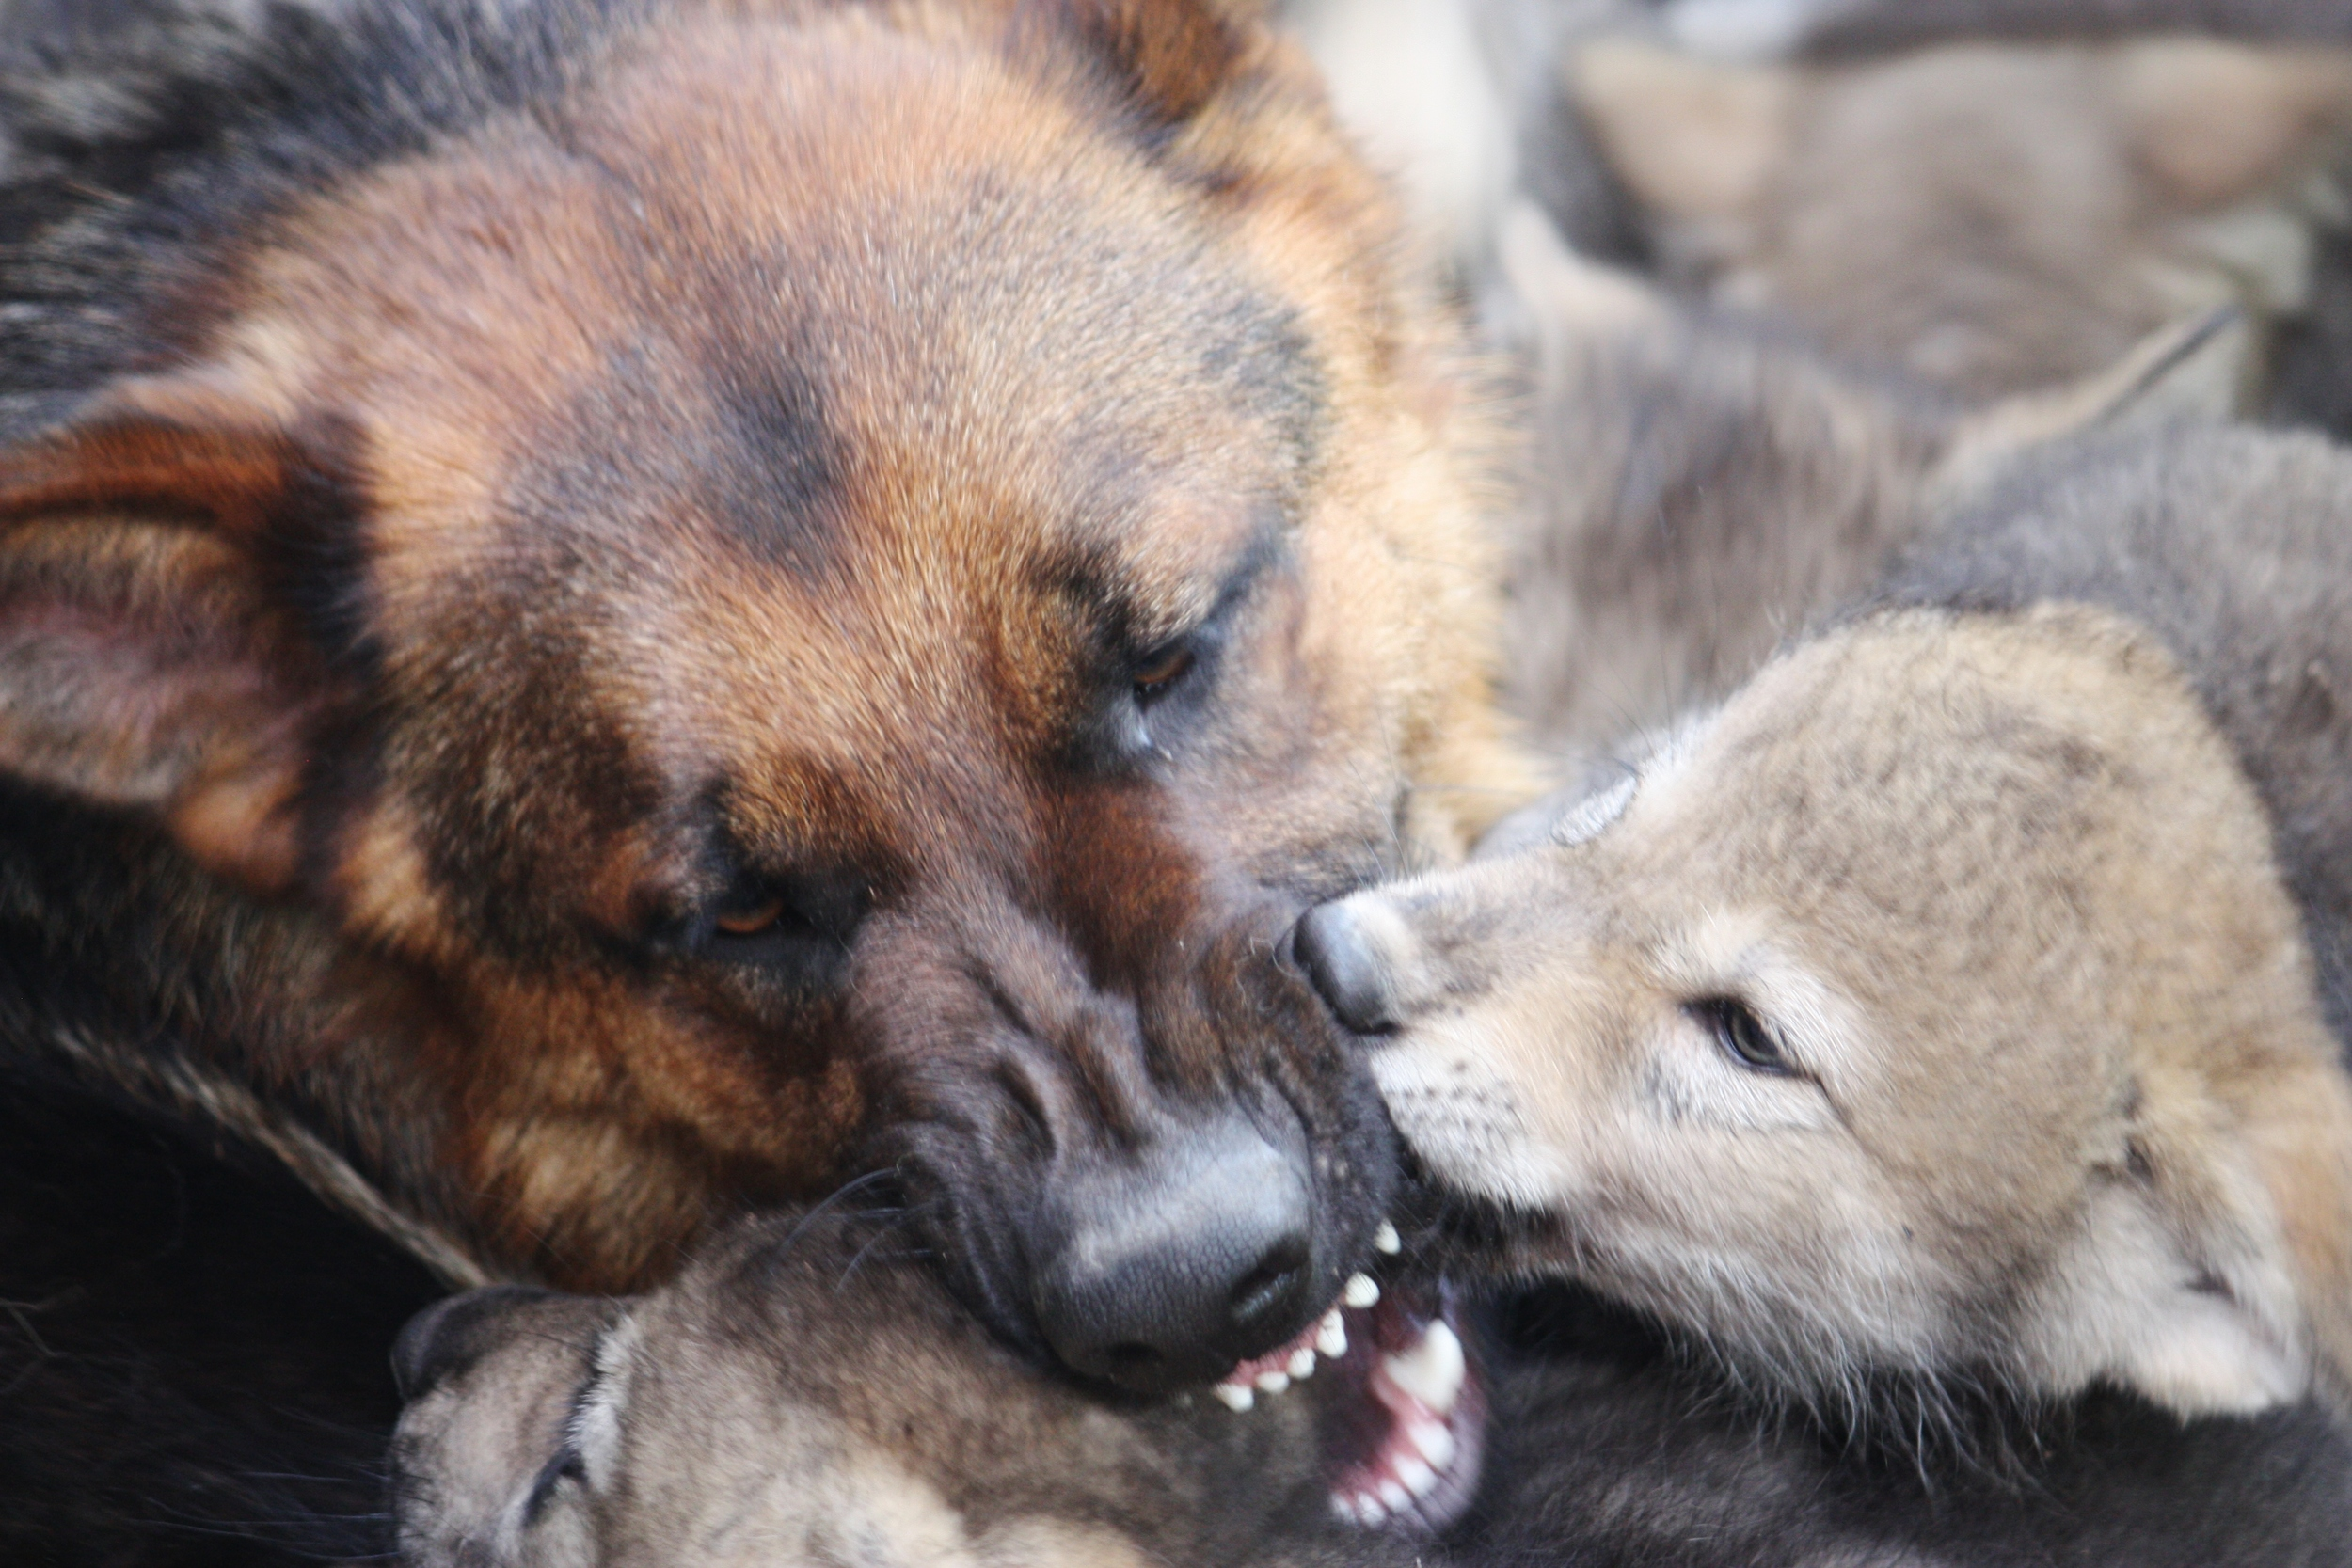 This photo looks fierce, but actually depicts some extremely gentle, critical correction by pup nanny Oliver. He is not biting down, but carefully taking pup muzzles into his mouth to teach them about calm greeting and subtle dominance. We see adult wolves exhibit this same behavior towards pups, and cannot recreate it as humans. We are so grateful that Oliver can give them the guidance they need!